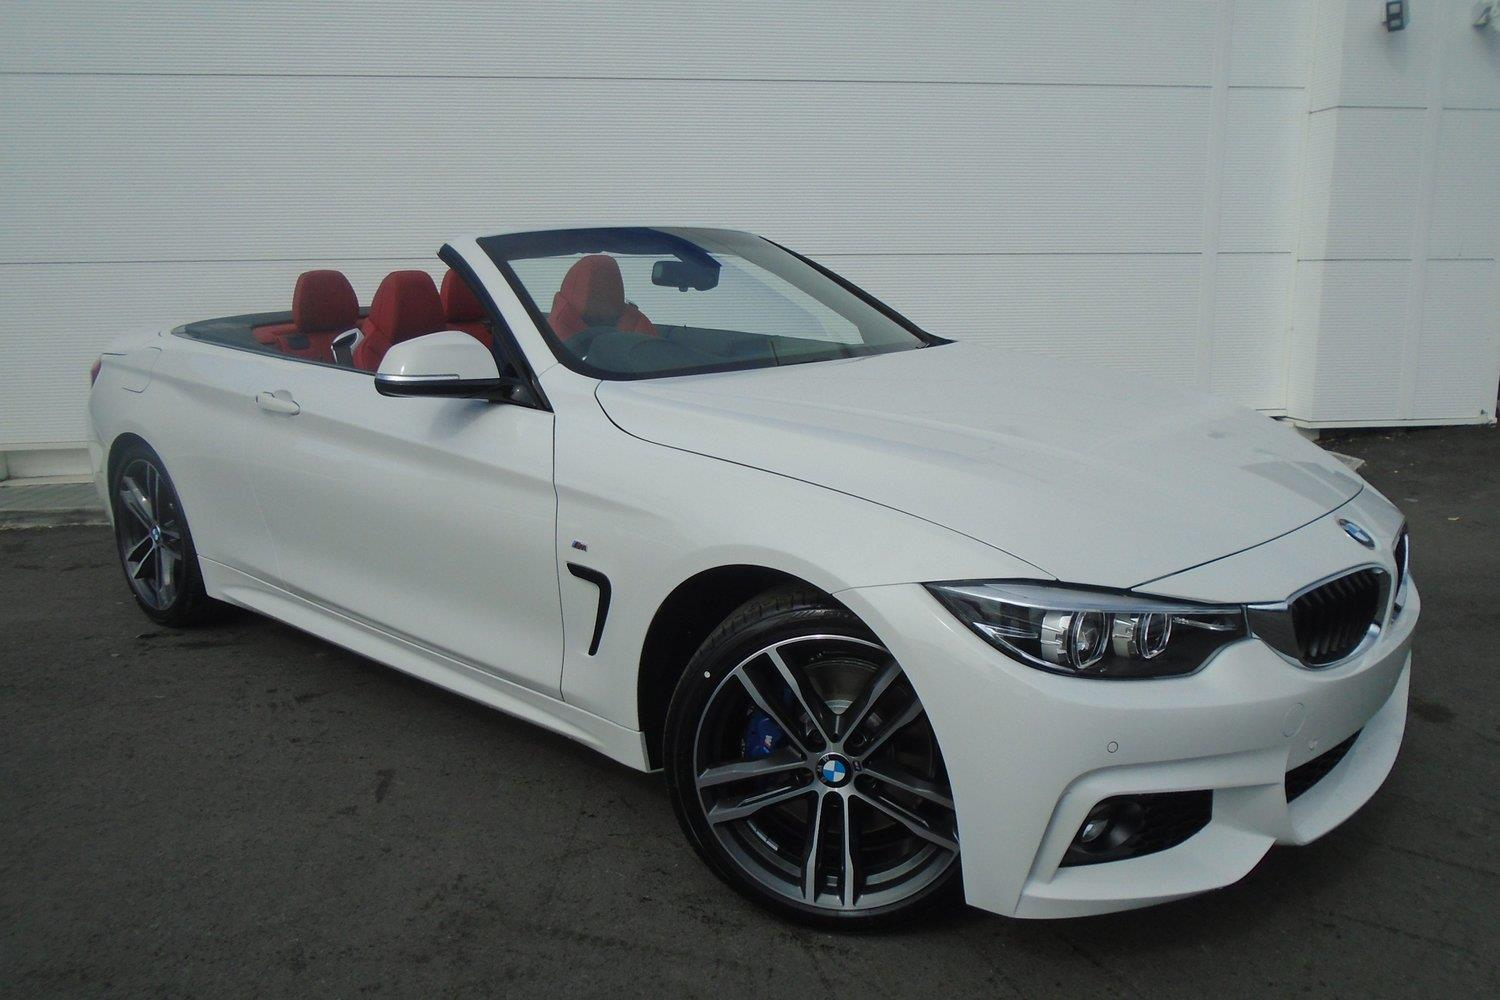 BMW 4 Series Convertible DA17EWS - Image 3